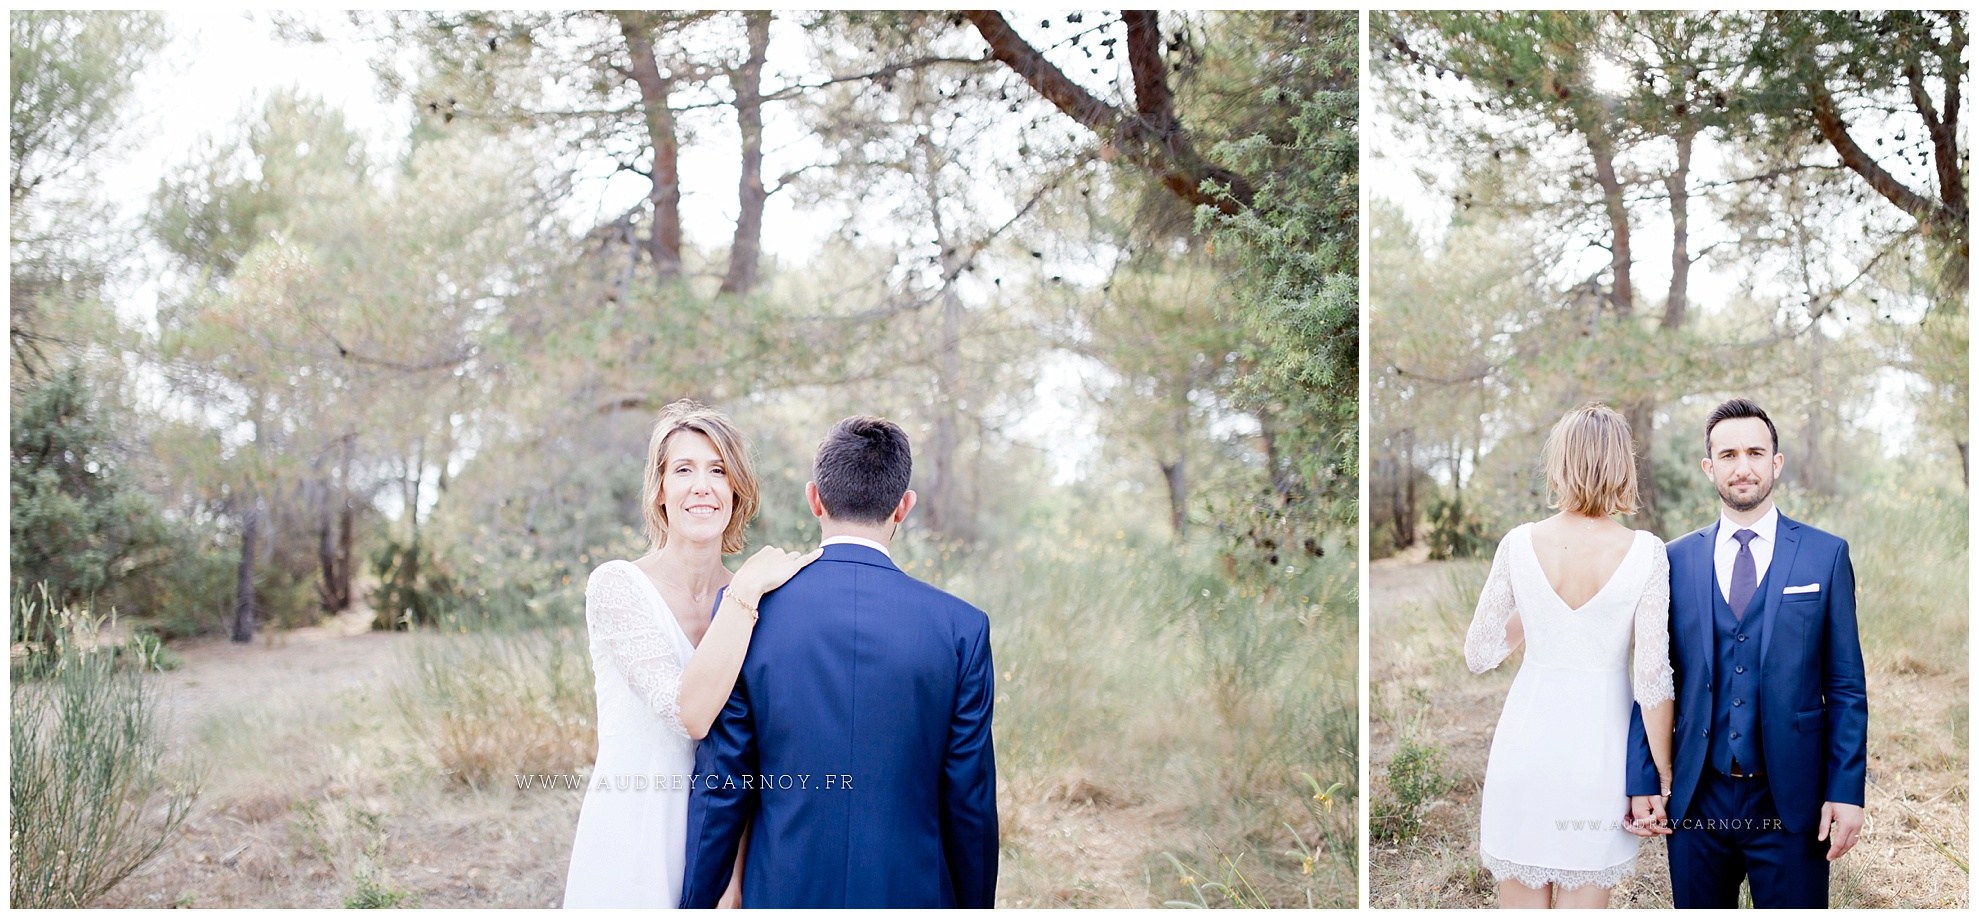 Mariage Pertuis | Laurence & Anthony 29